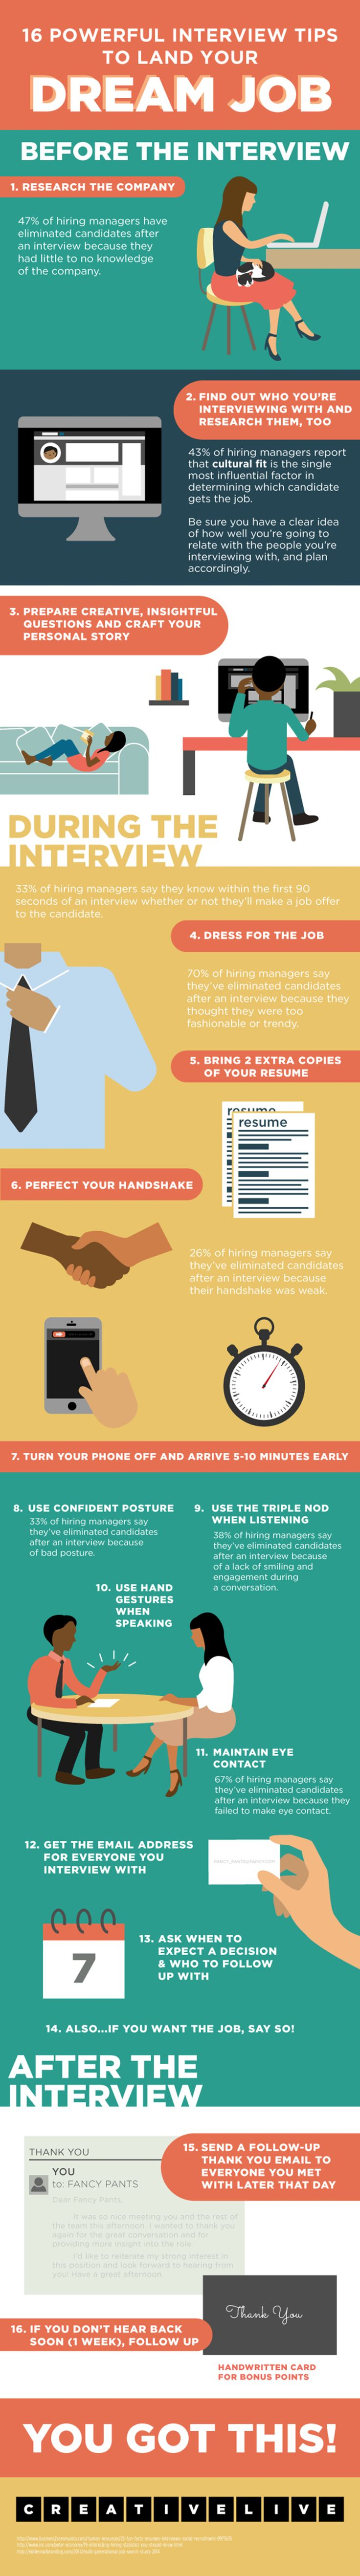 434 Best Interview Tips Images On Pinterest   Career, Interview And Job  Interviews